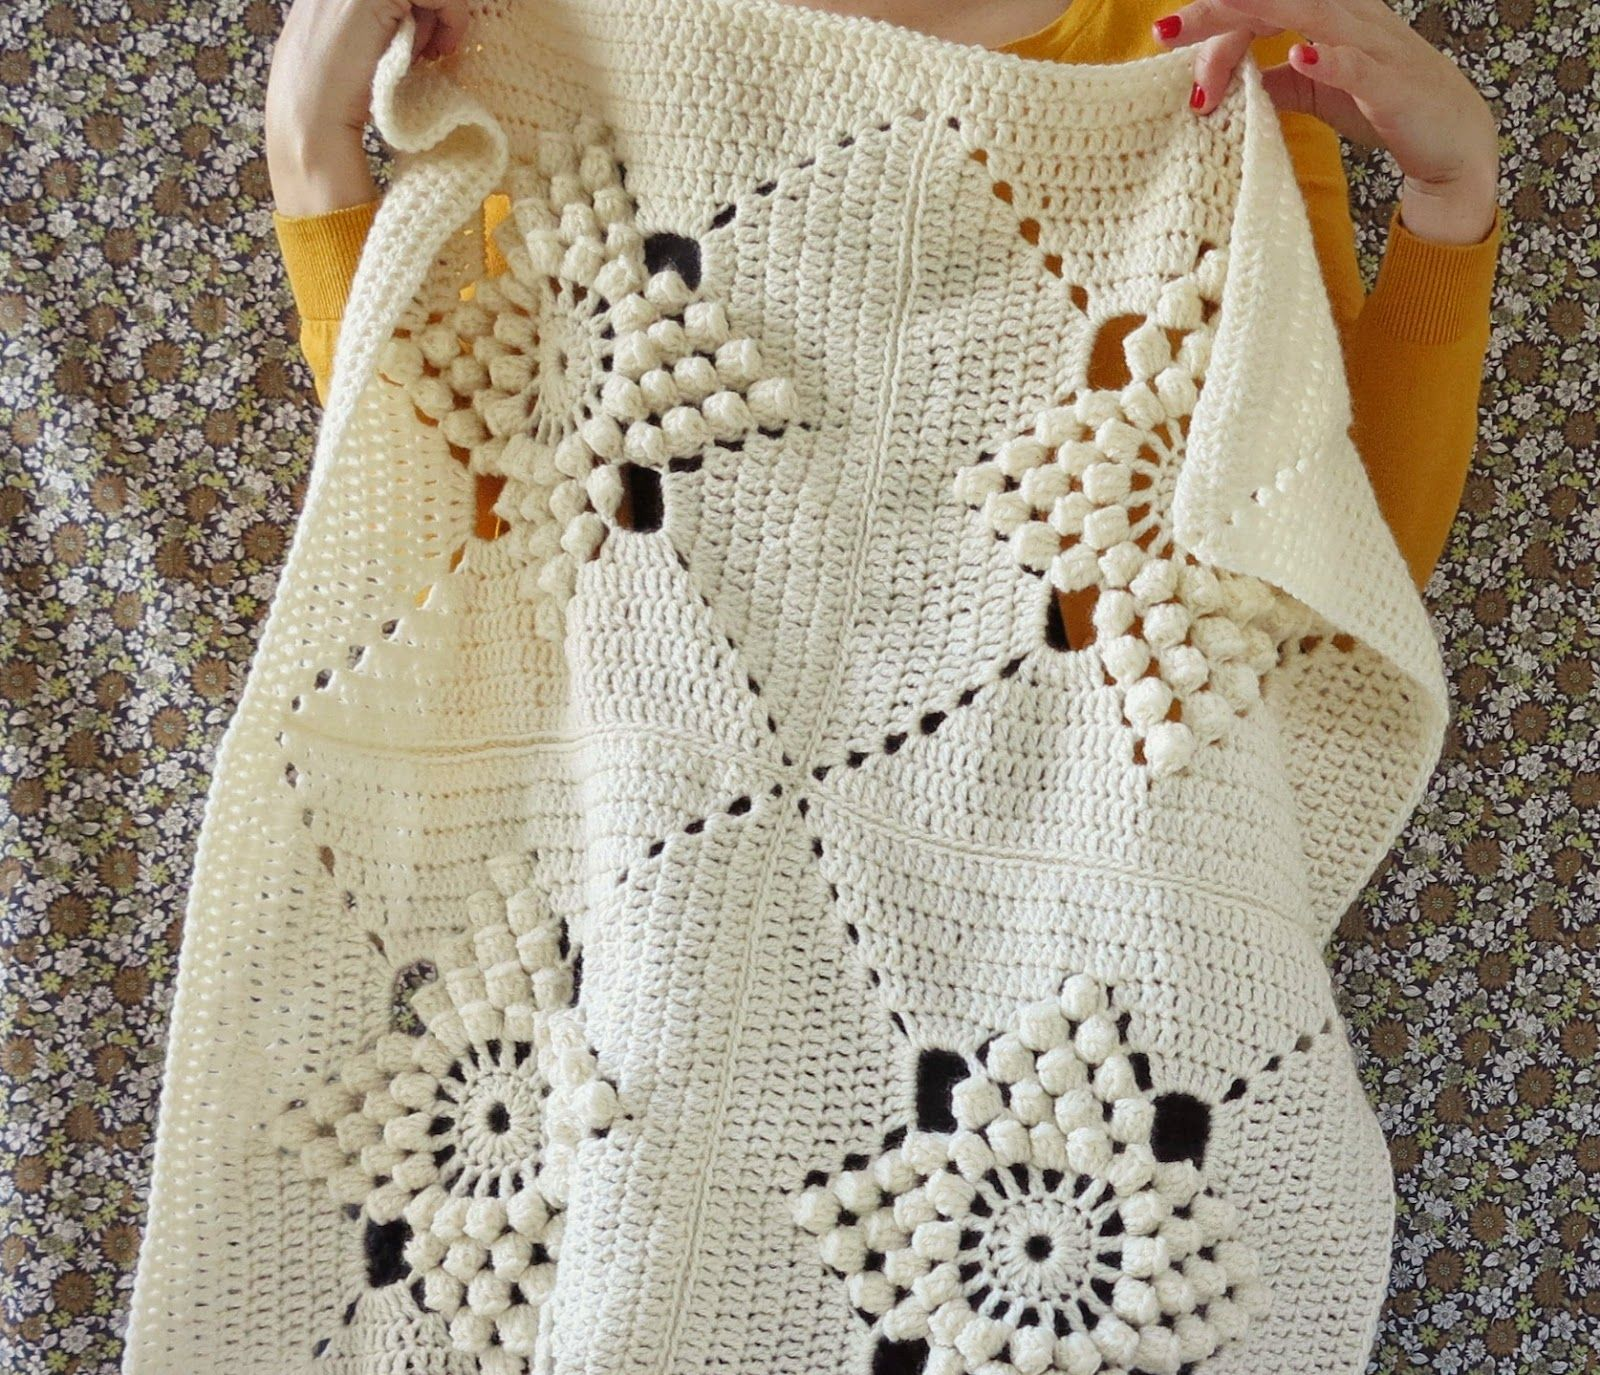 Smitten Blanket By Haafner - Free Crochet Pattern - Crochet Diagram ...